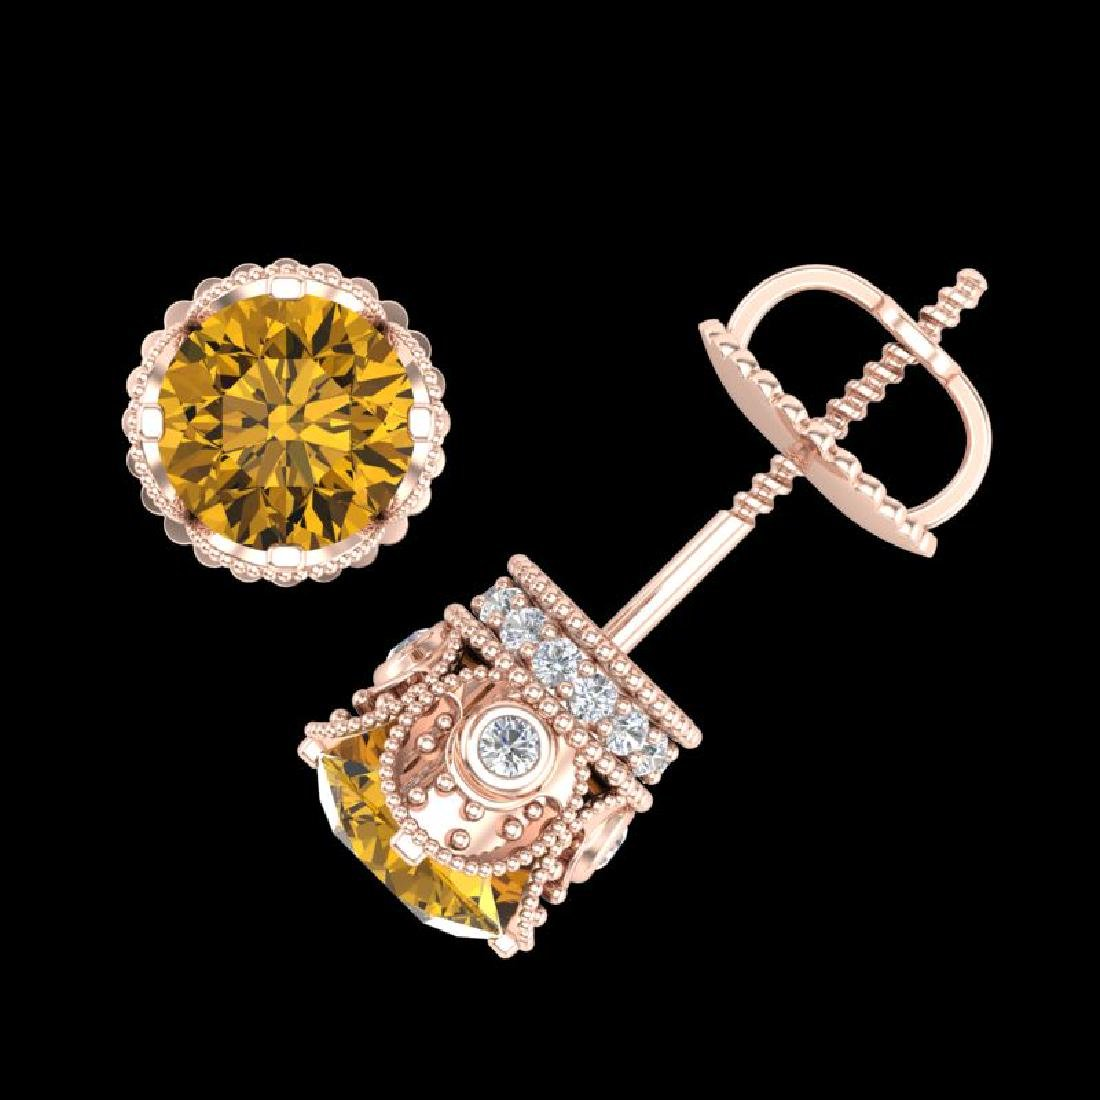 1.85 CTW Intense Fancy Yellow Diamond Art Deco Stud - 3